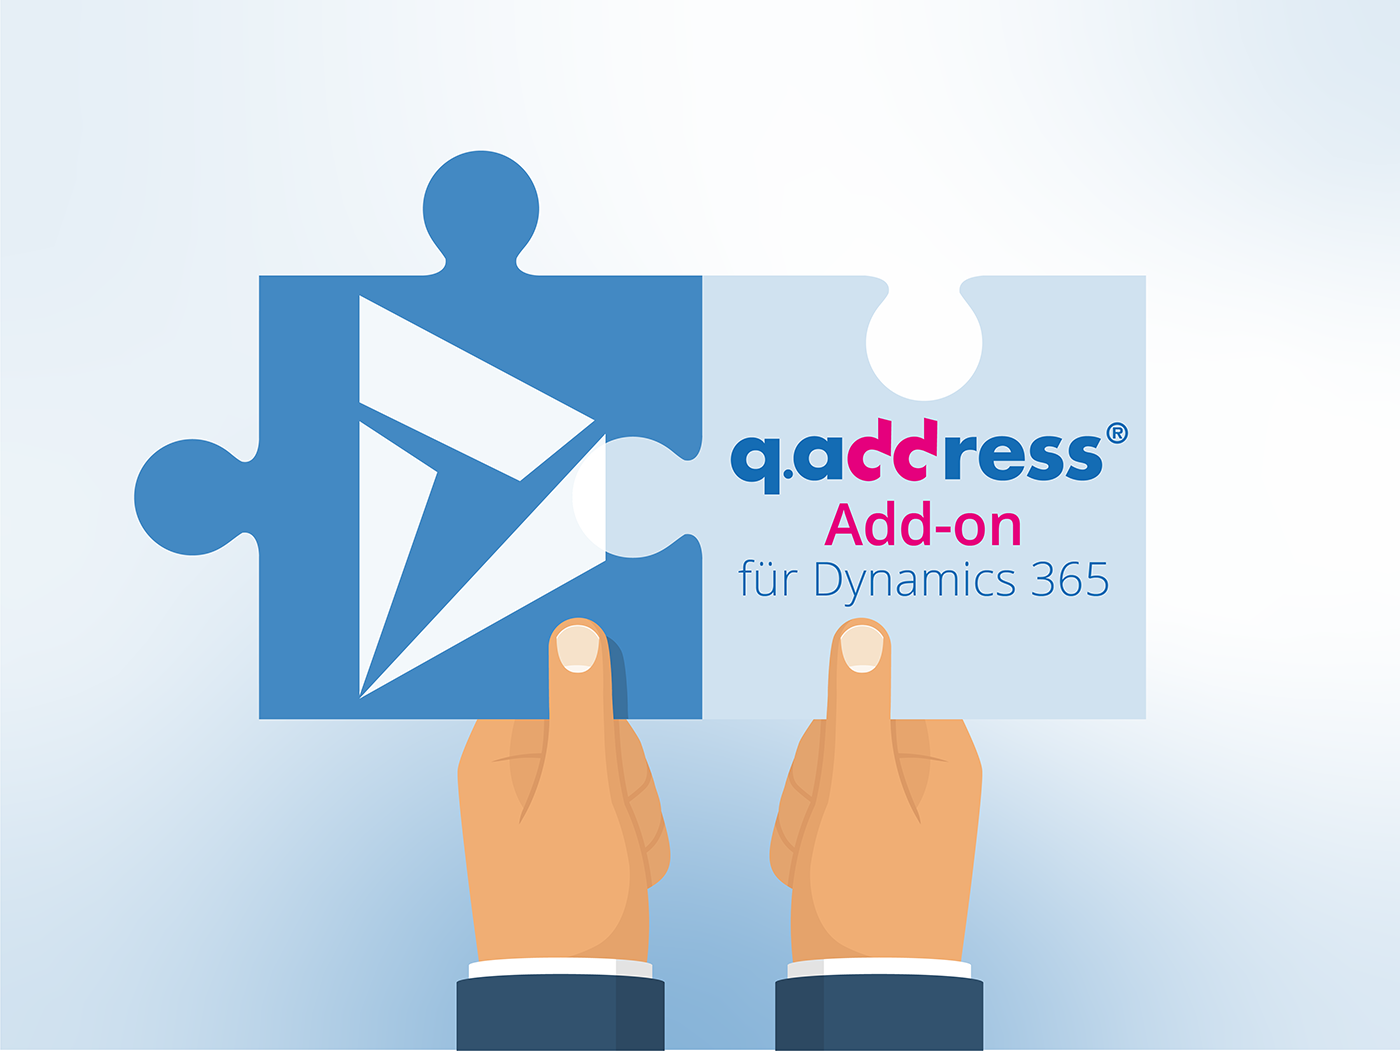 qaddress-Integration-Dynamics365-microsoft-crm